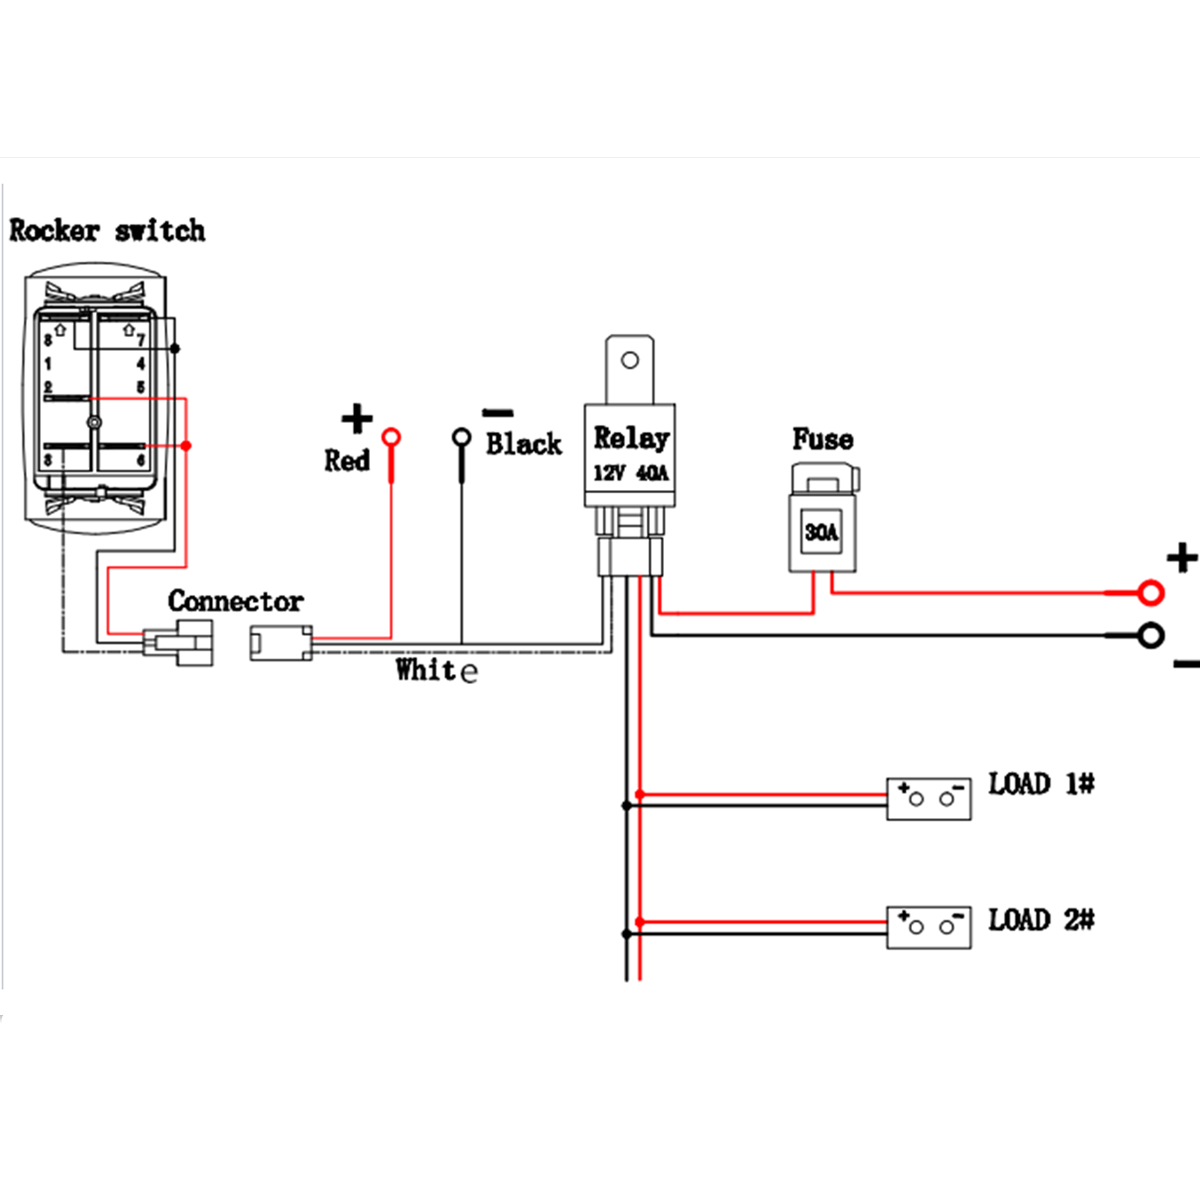 switch wiring diagram additionally 4 prong rocker switch wiring